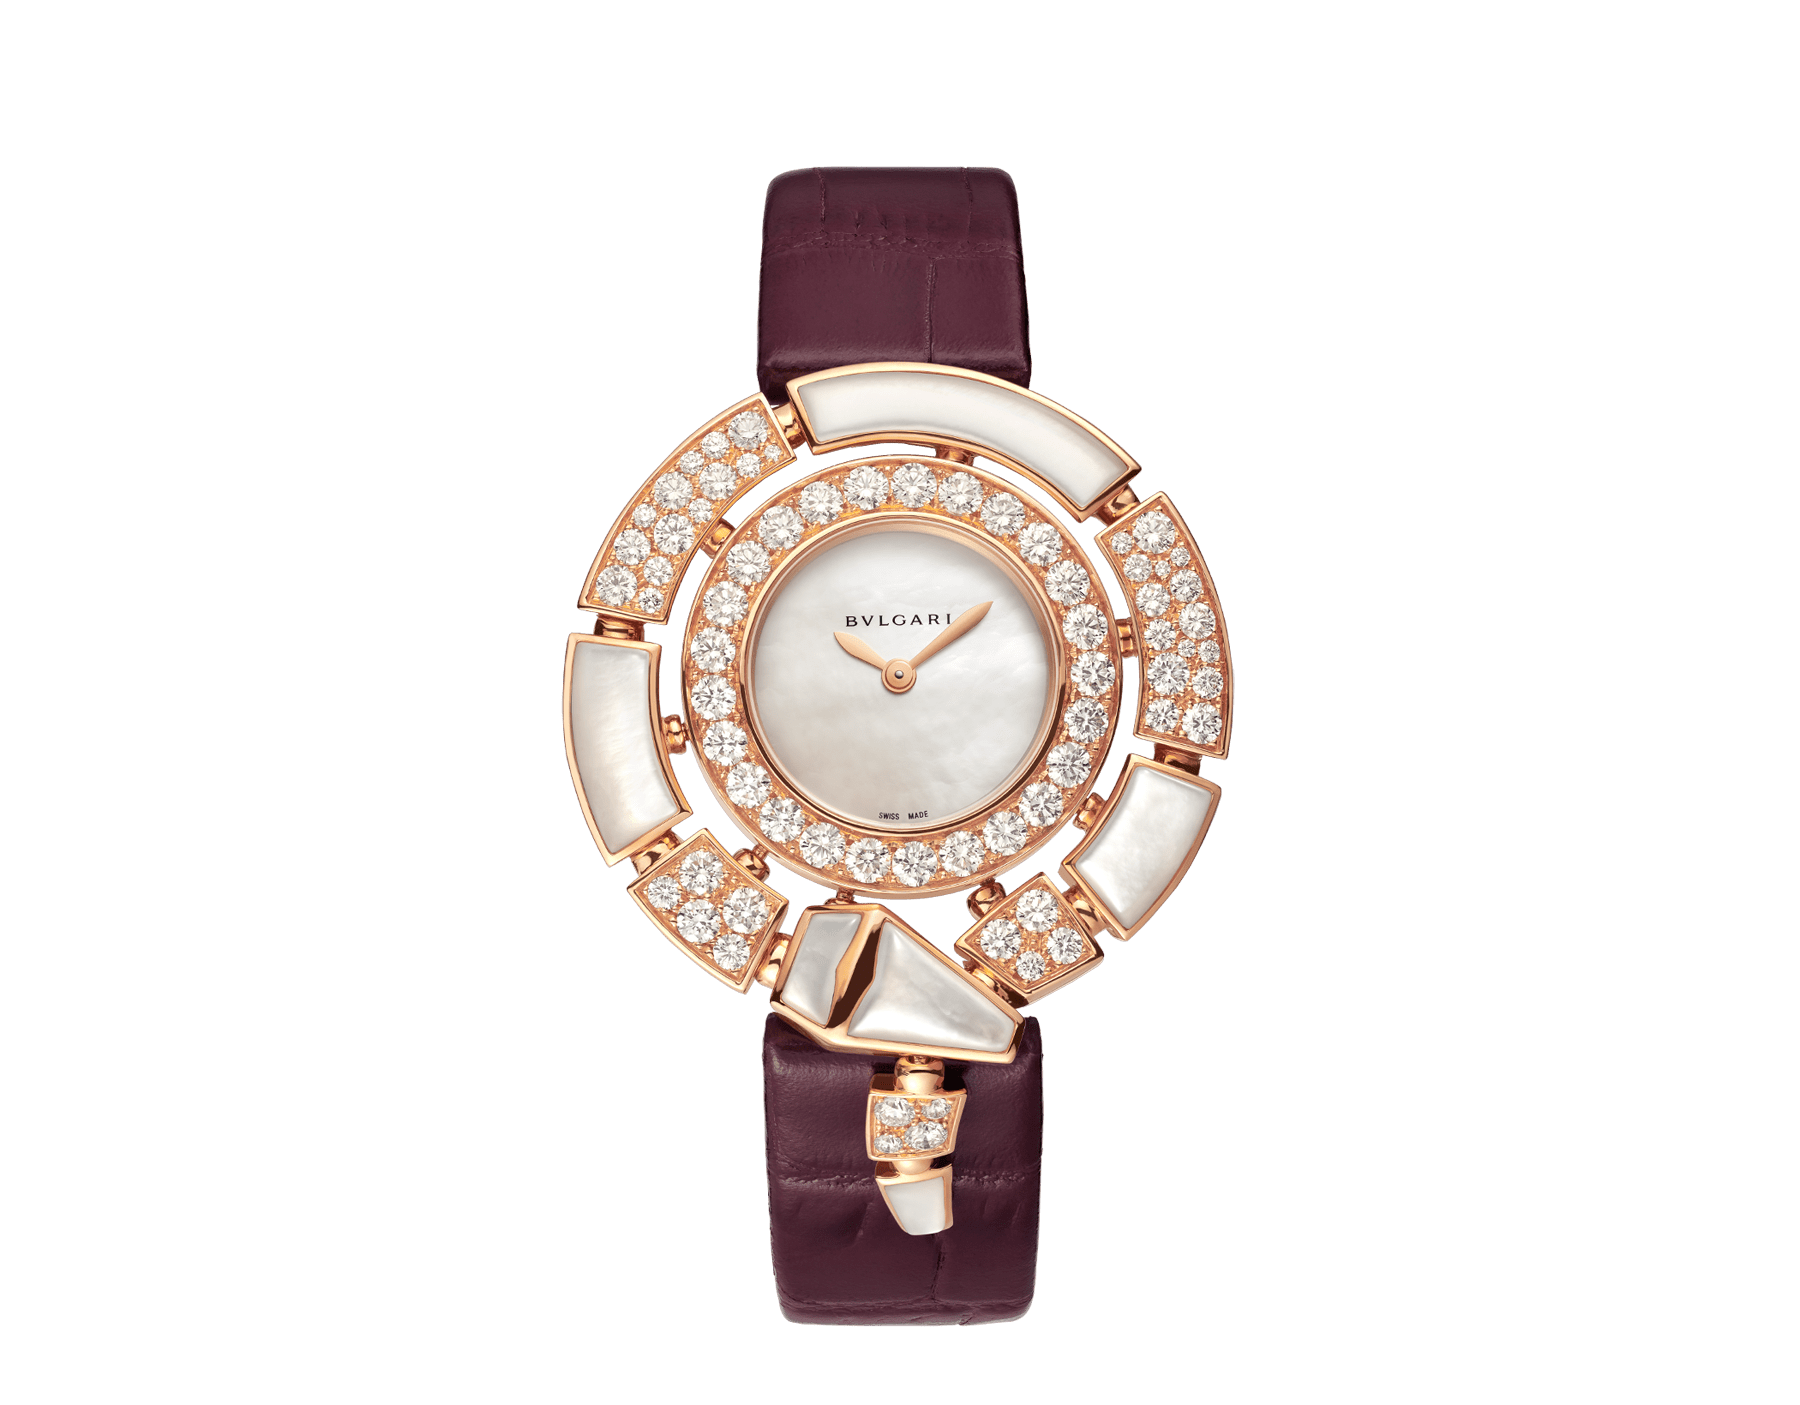 Serpenti Incantati watch with 18 kt rose gold case set with brilliant-cut diamonds and mother-of-pearl elements, mother-of-pearl dial and purple alligator bracelet 102872 image 1